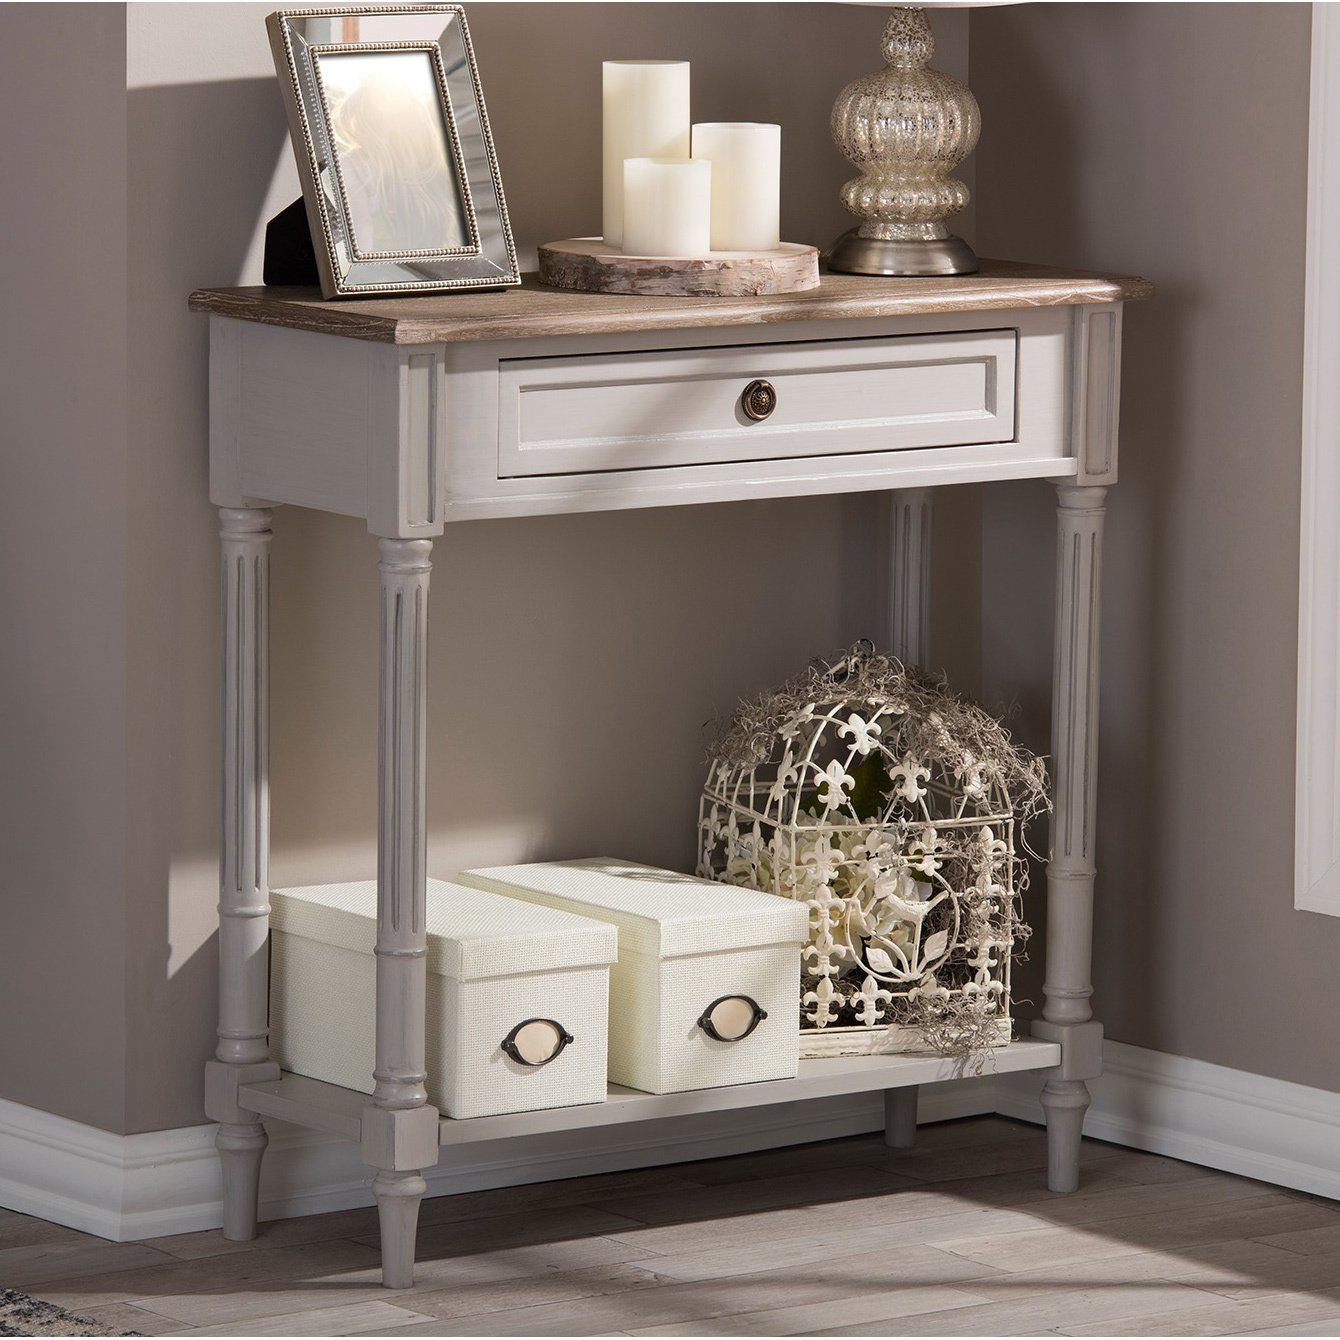 Shop Baxton Studio Edouard French Provincial Distressed Console intended for Antique White Distressed Console Tables (Image 25 of 30)